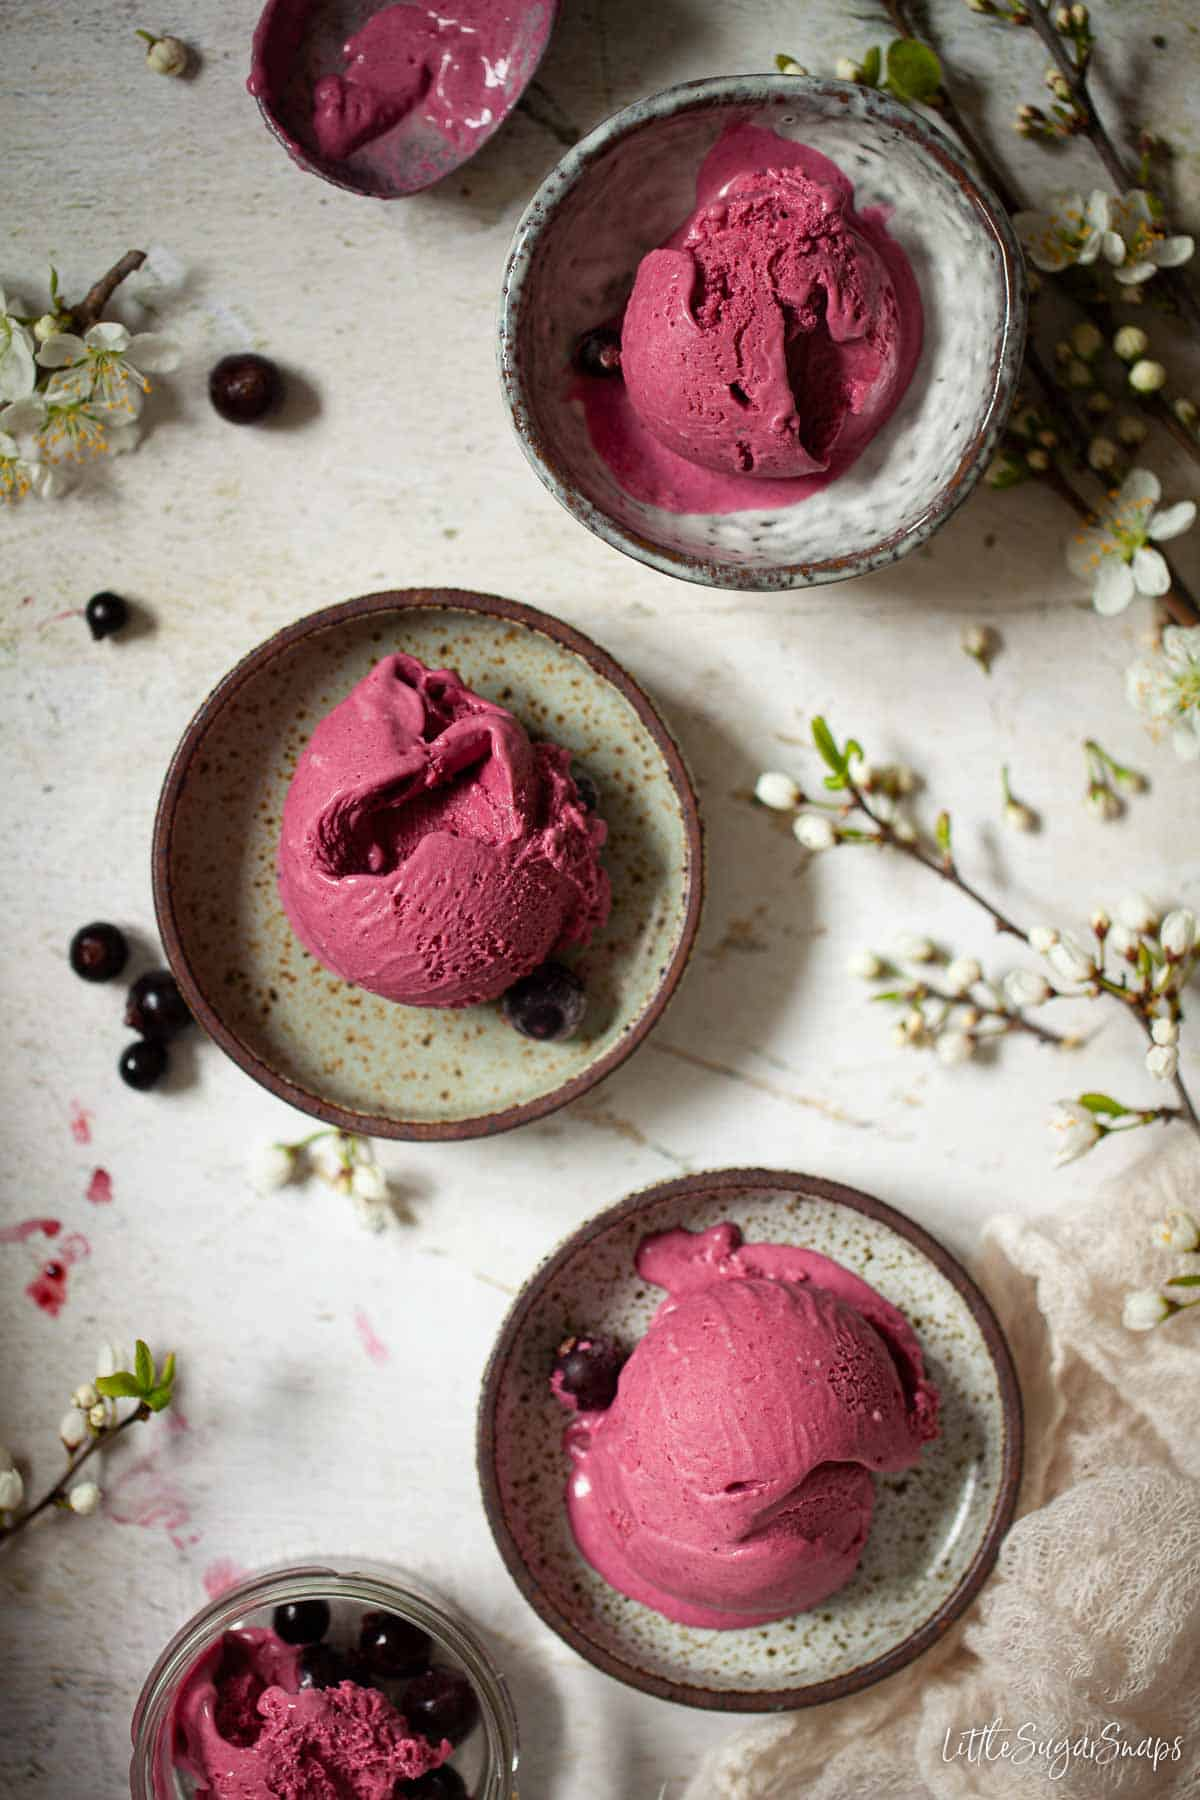 Single scoop servings of blackcurrant ice cream on a mixture of plates and bowls